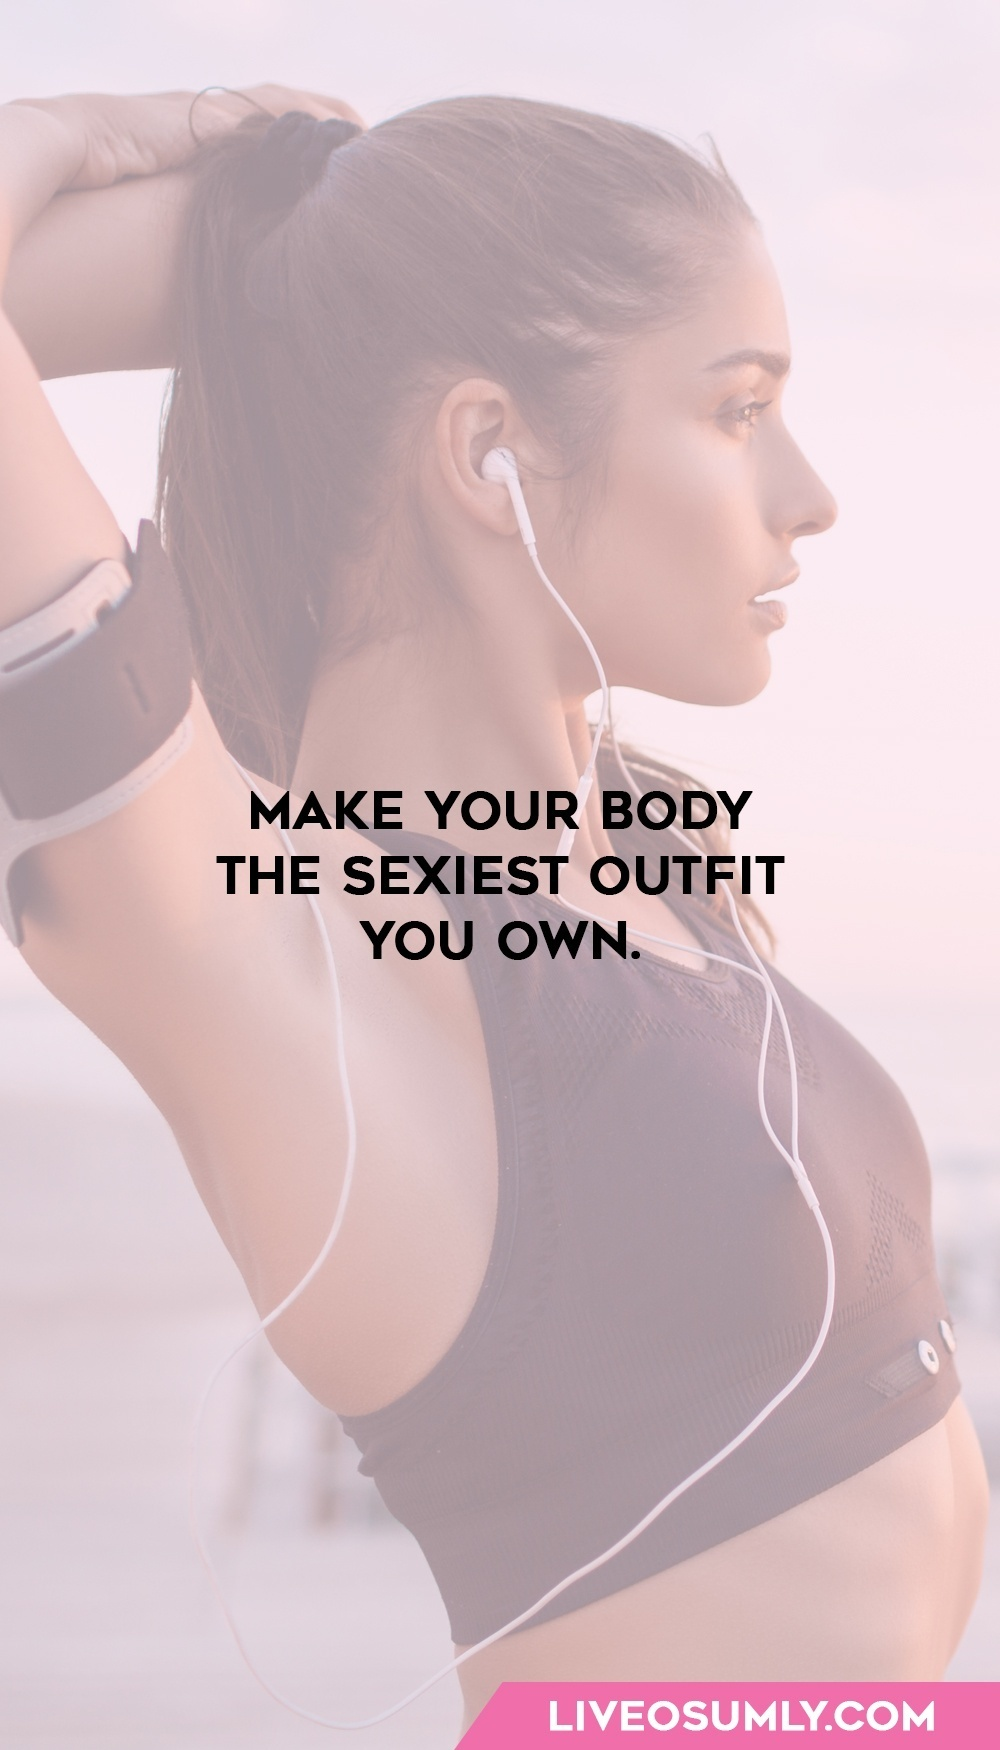 23. Cool Fitness Quotes